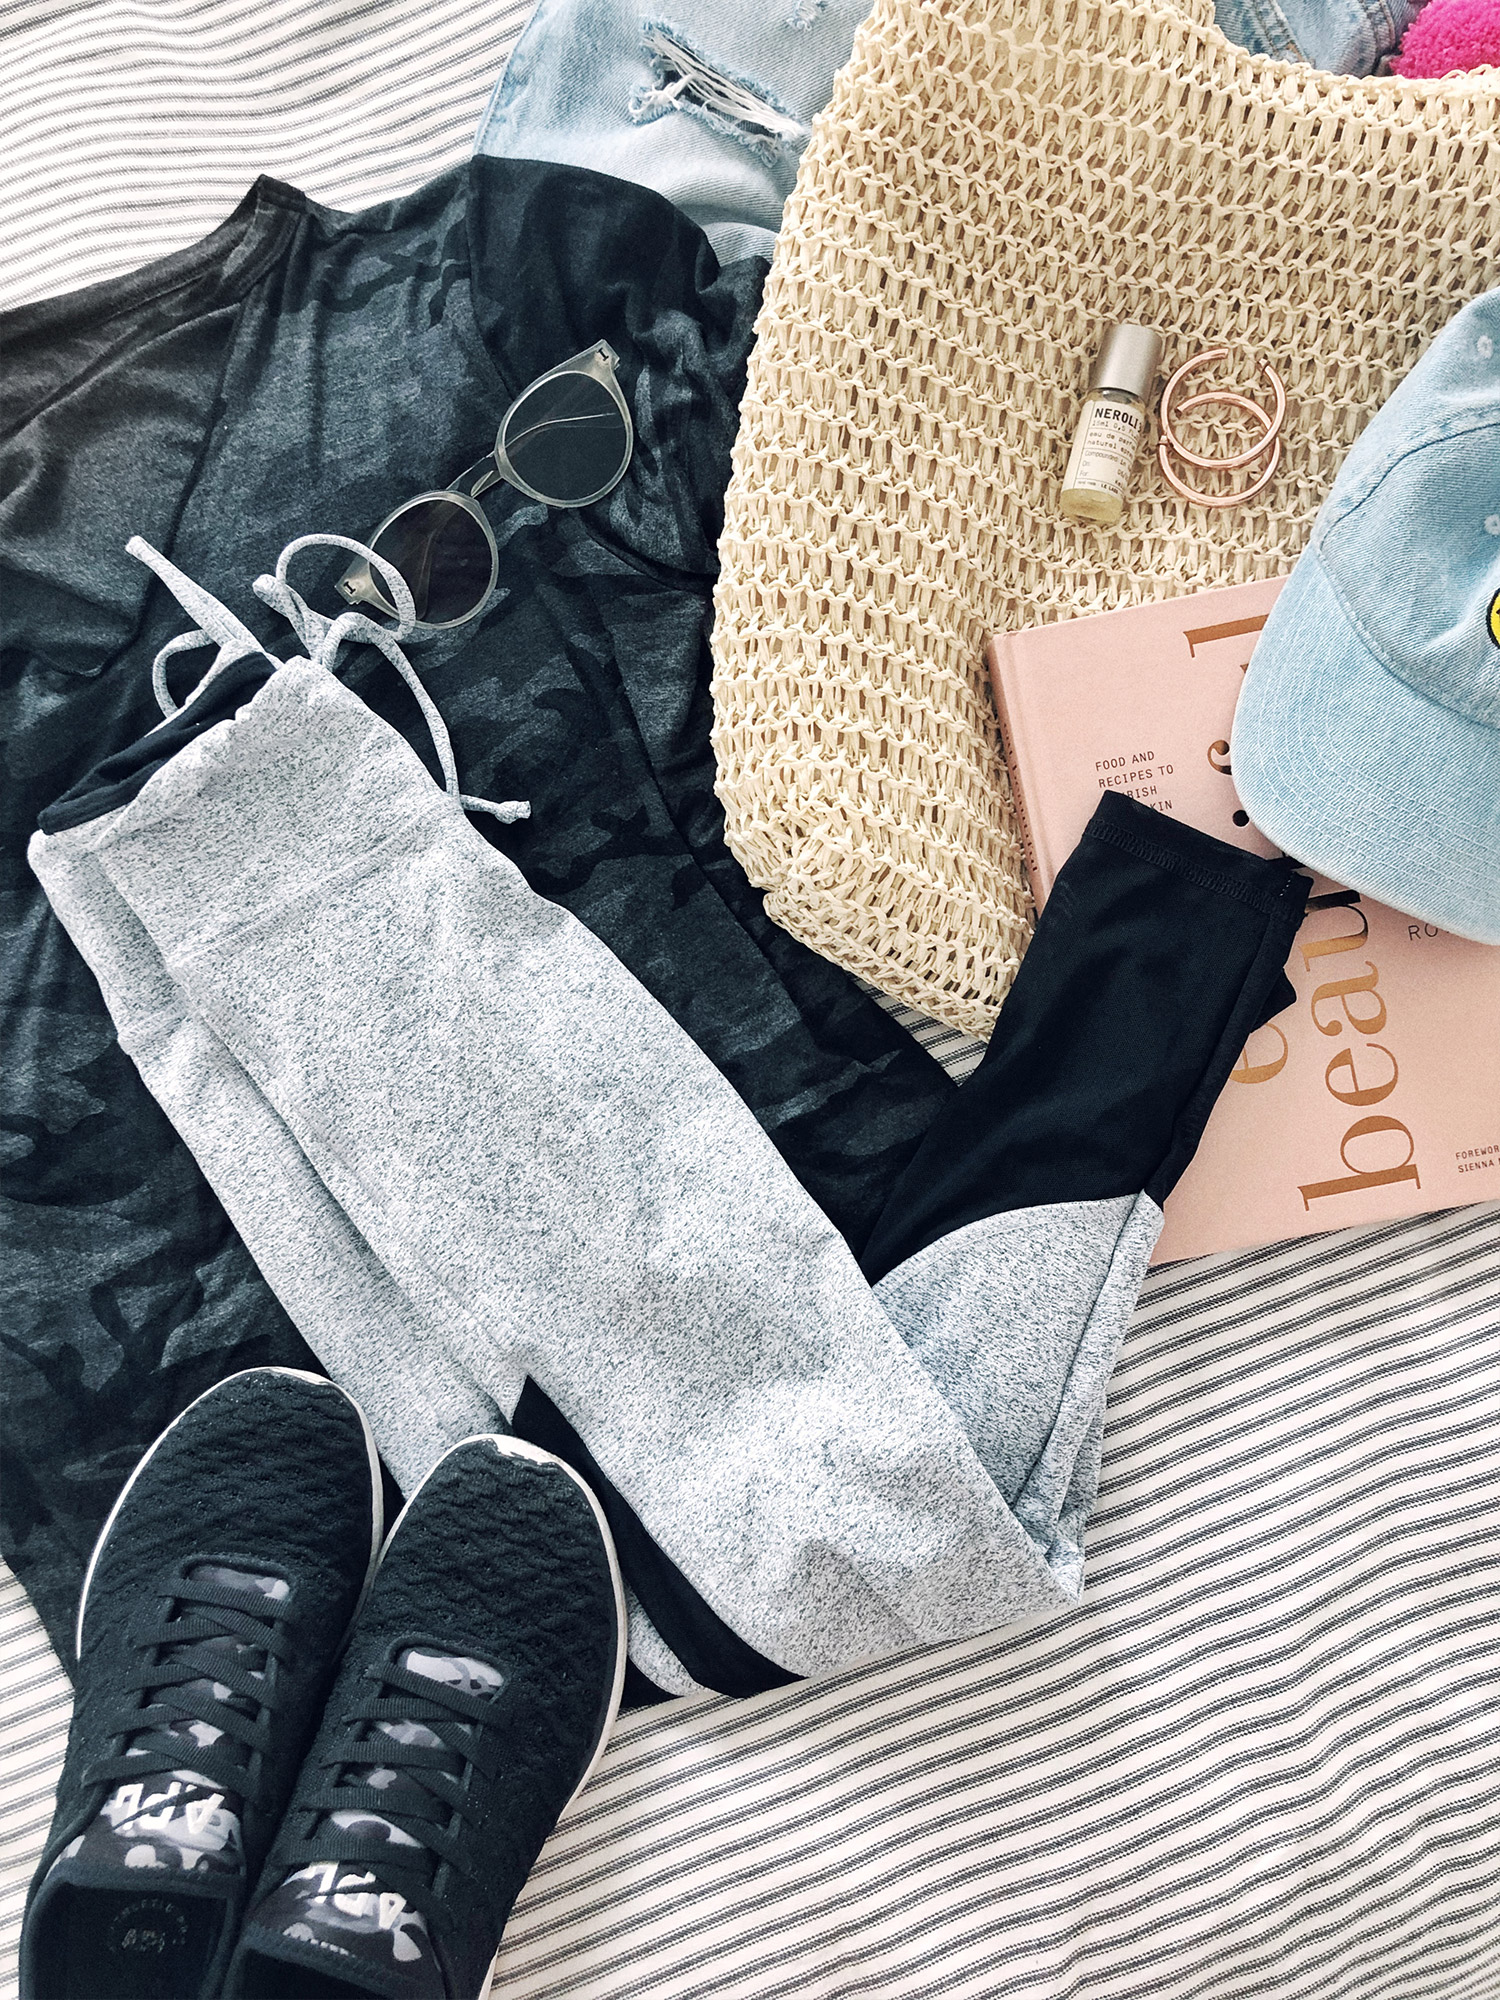 Cute Workout Outfit / Activewear / Flatlay Fashion / Kelly Fiance Creative